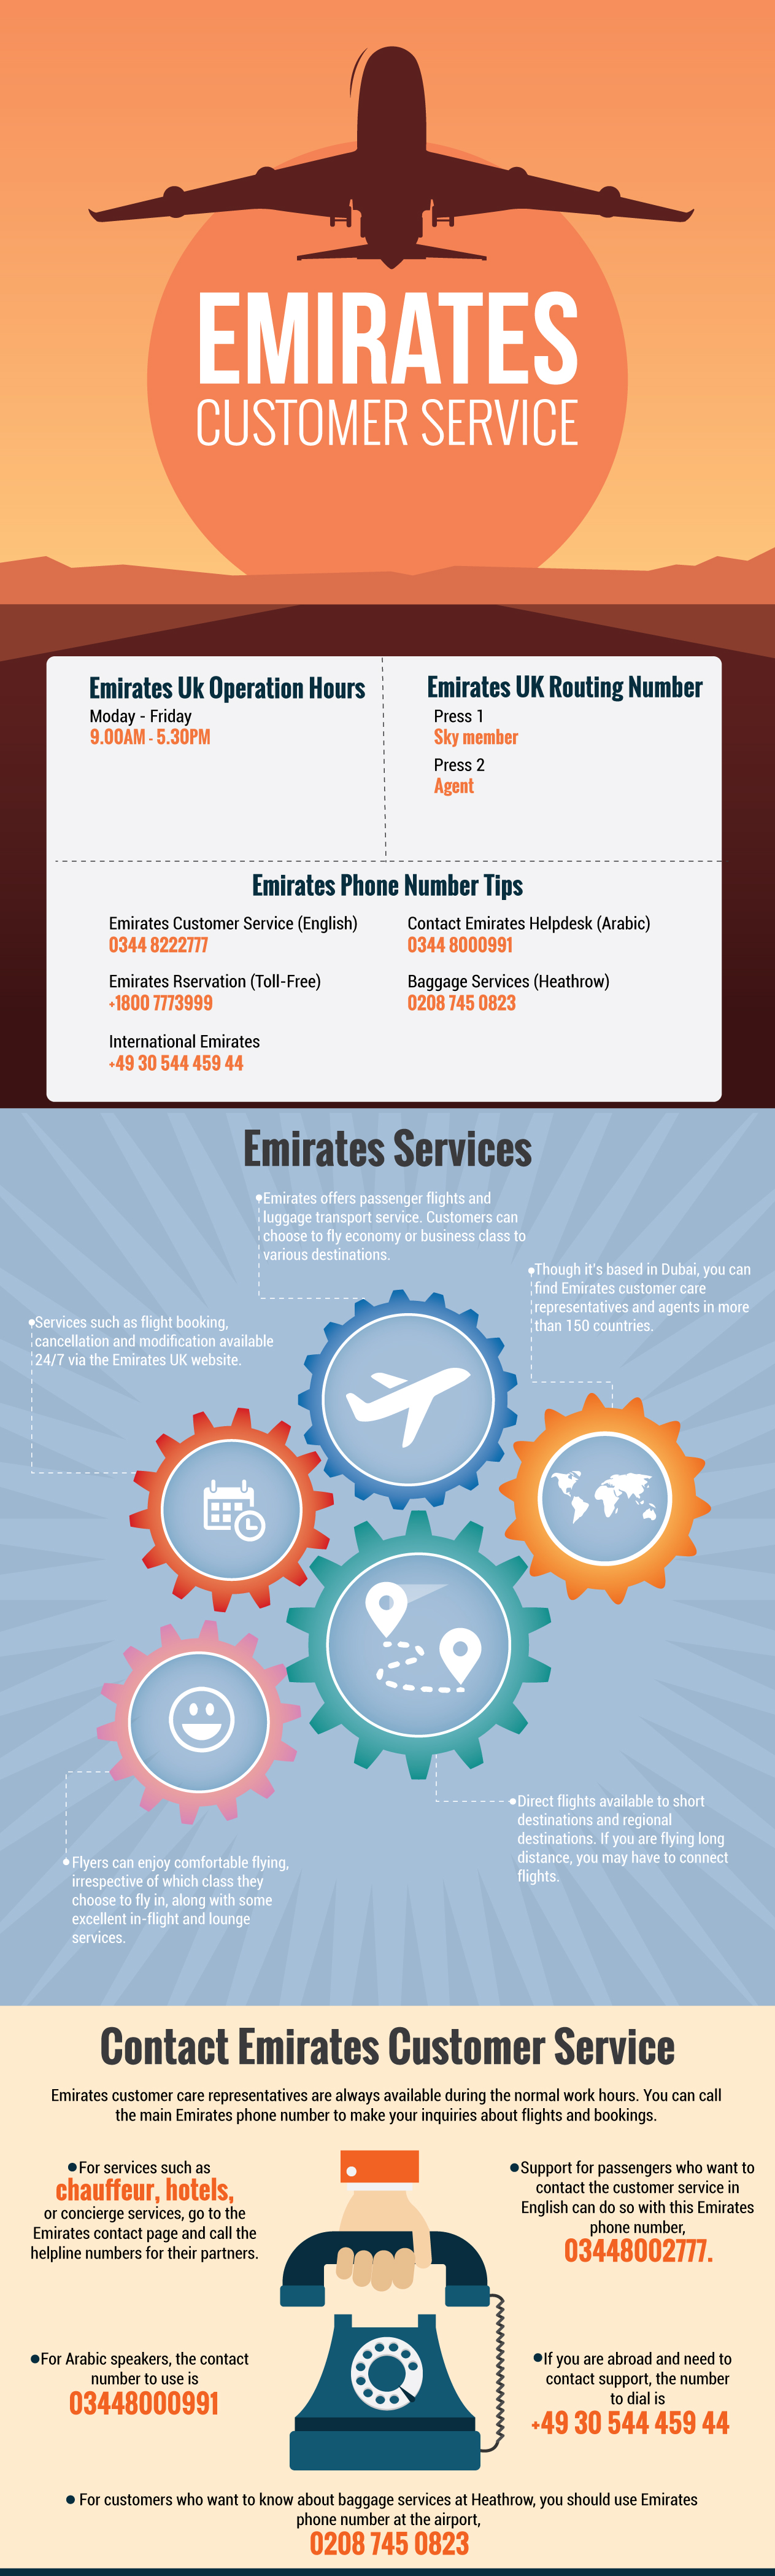 Emirates Helpline